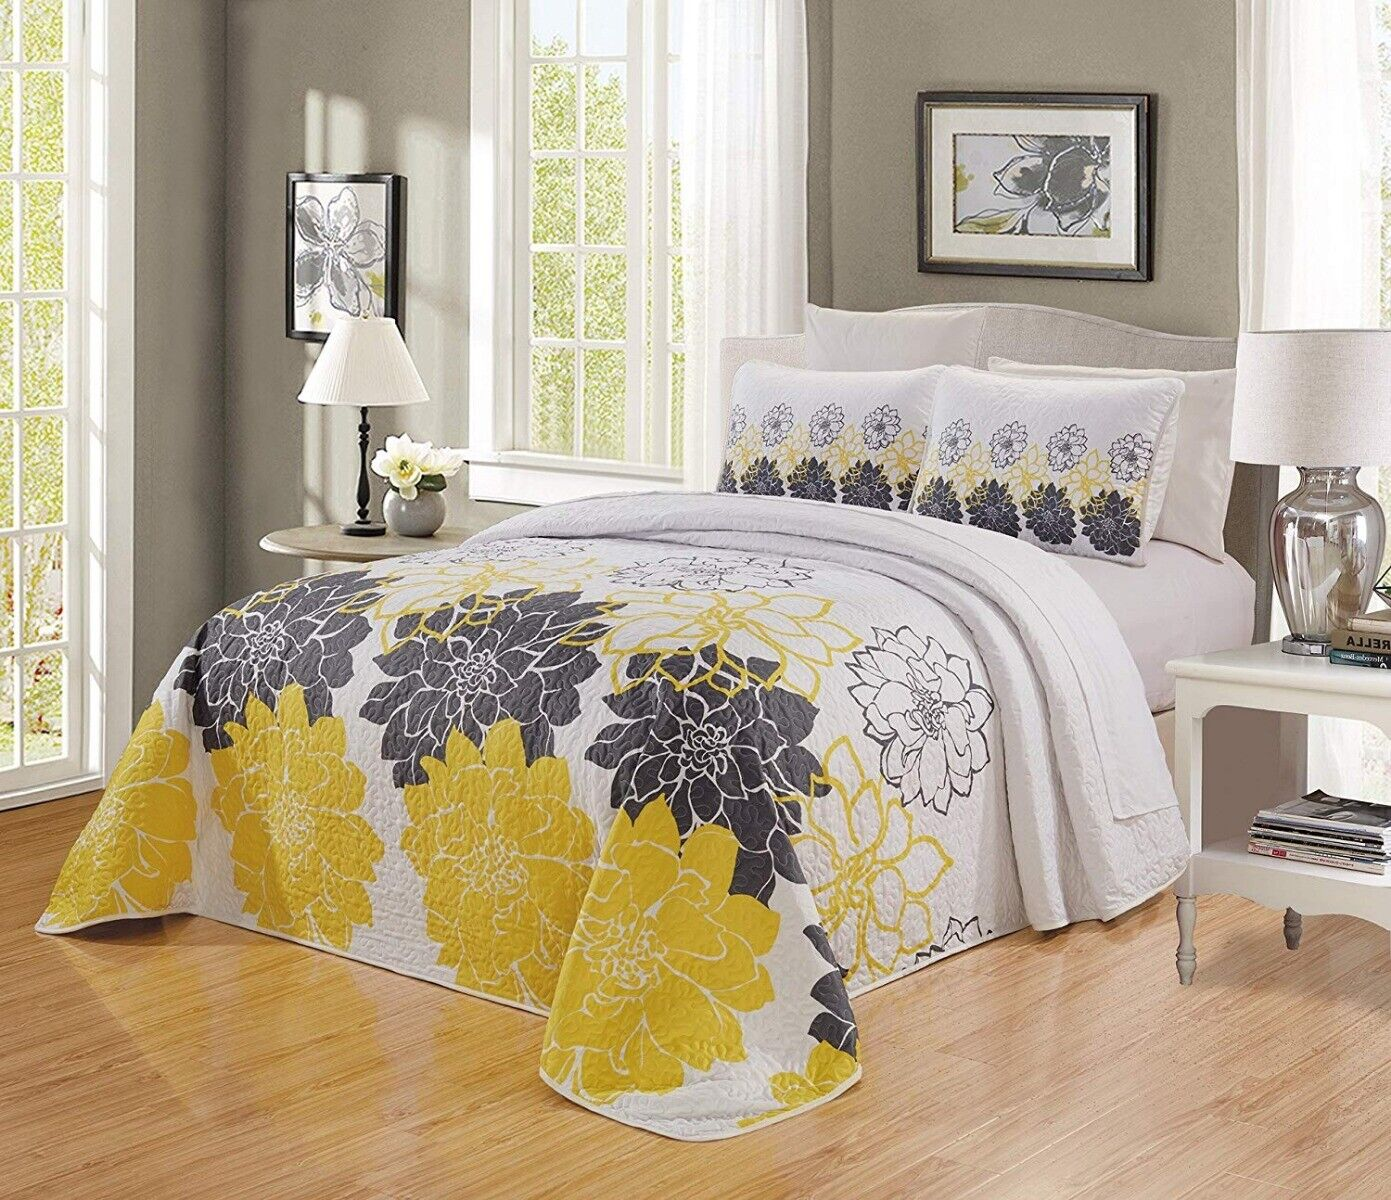 Sunshine Yellow White Grey Floral Quilt Reversible Bedspread Queen Size Coverlet